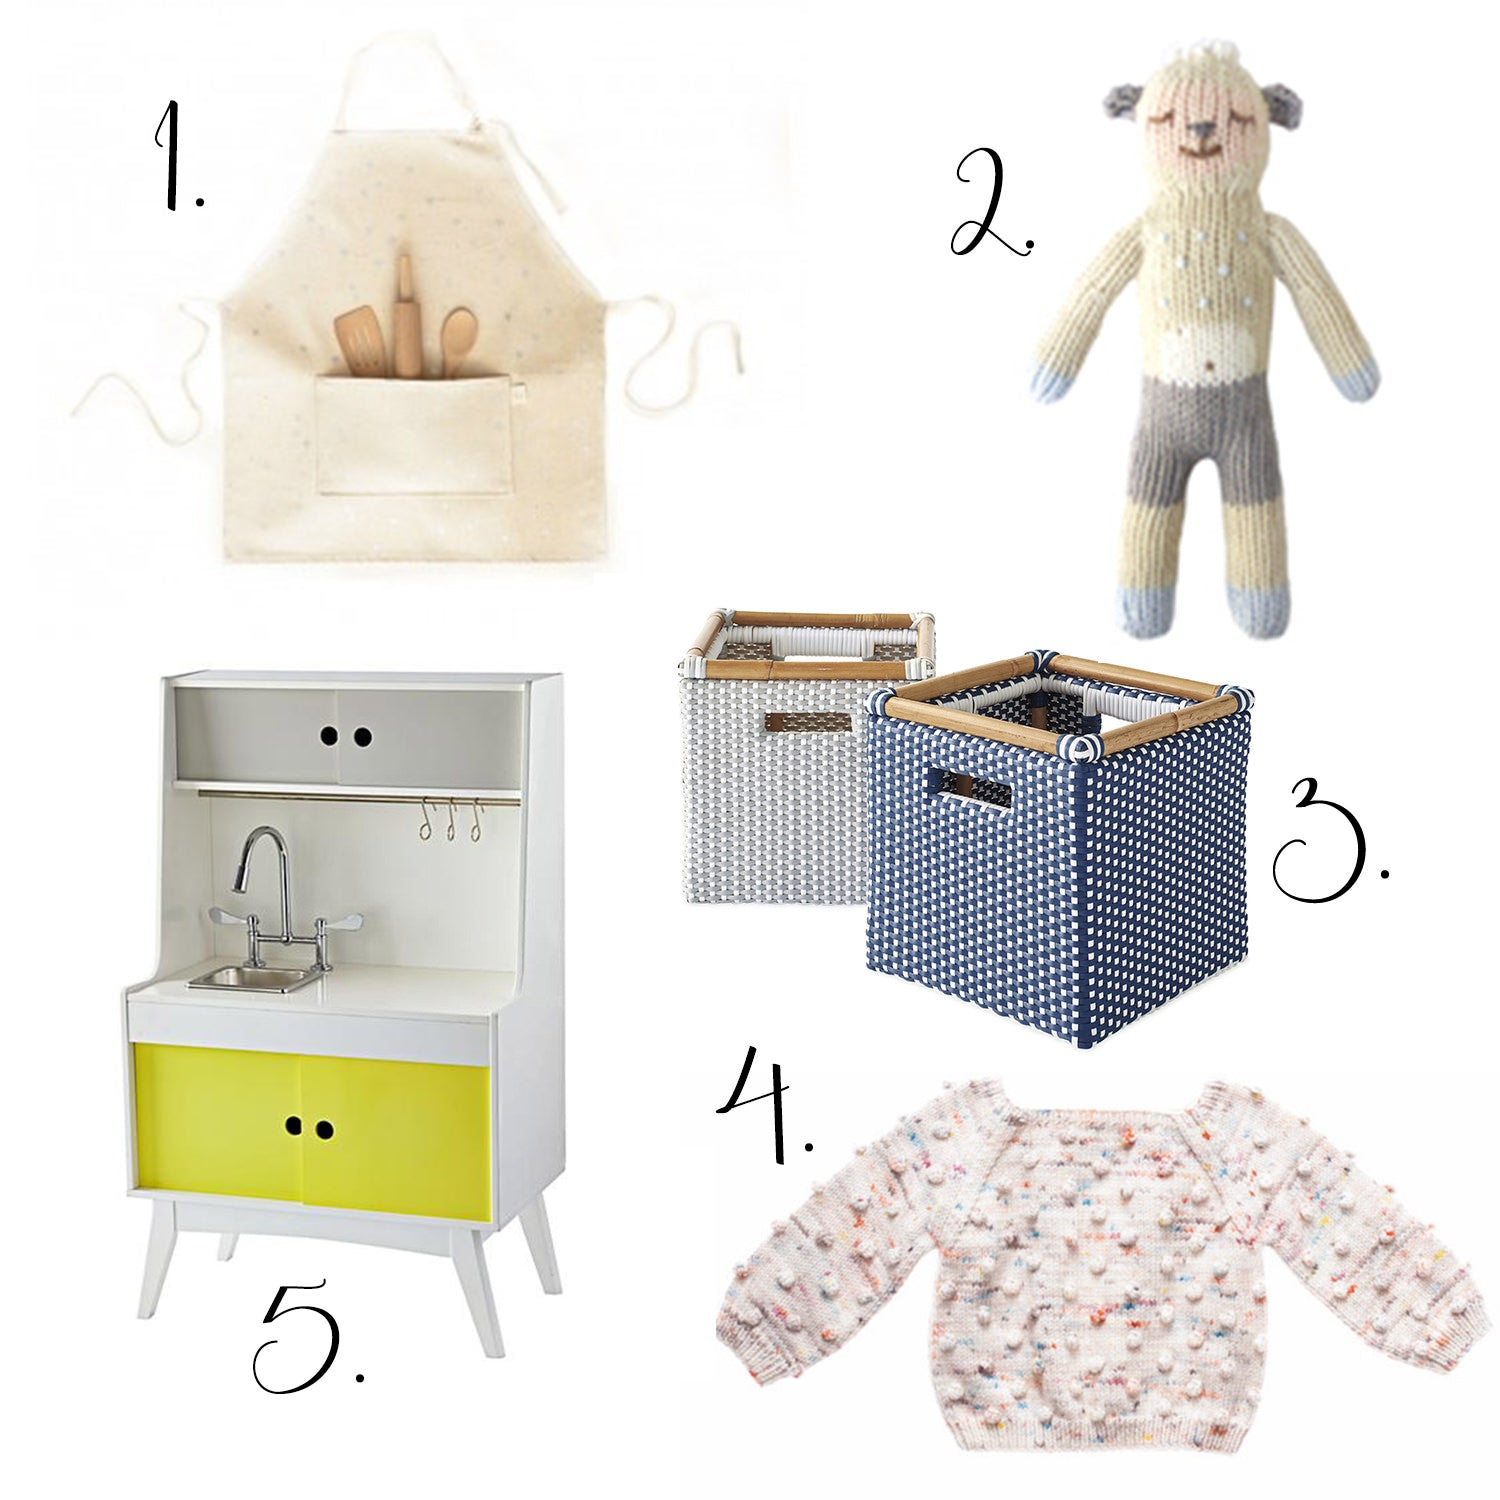 gift ideas for kids, apron for kids, storage cubes, festive sweaters for kids, pottery barn play kitchens, best gifts for kids